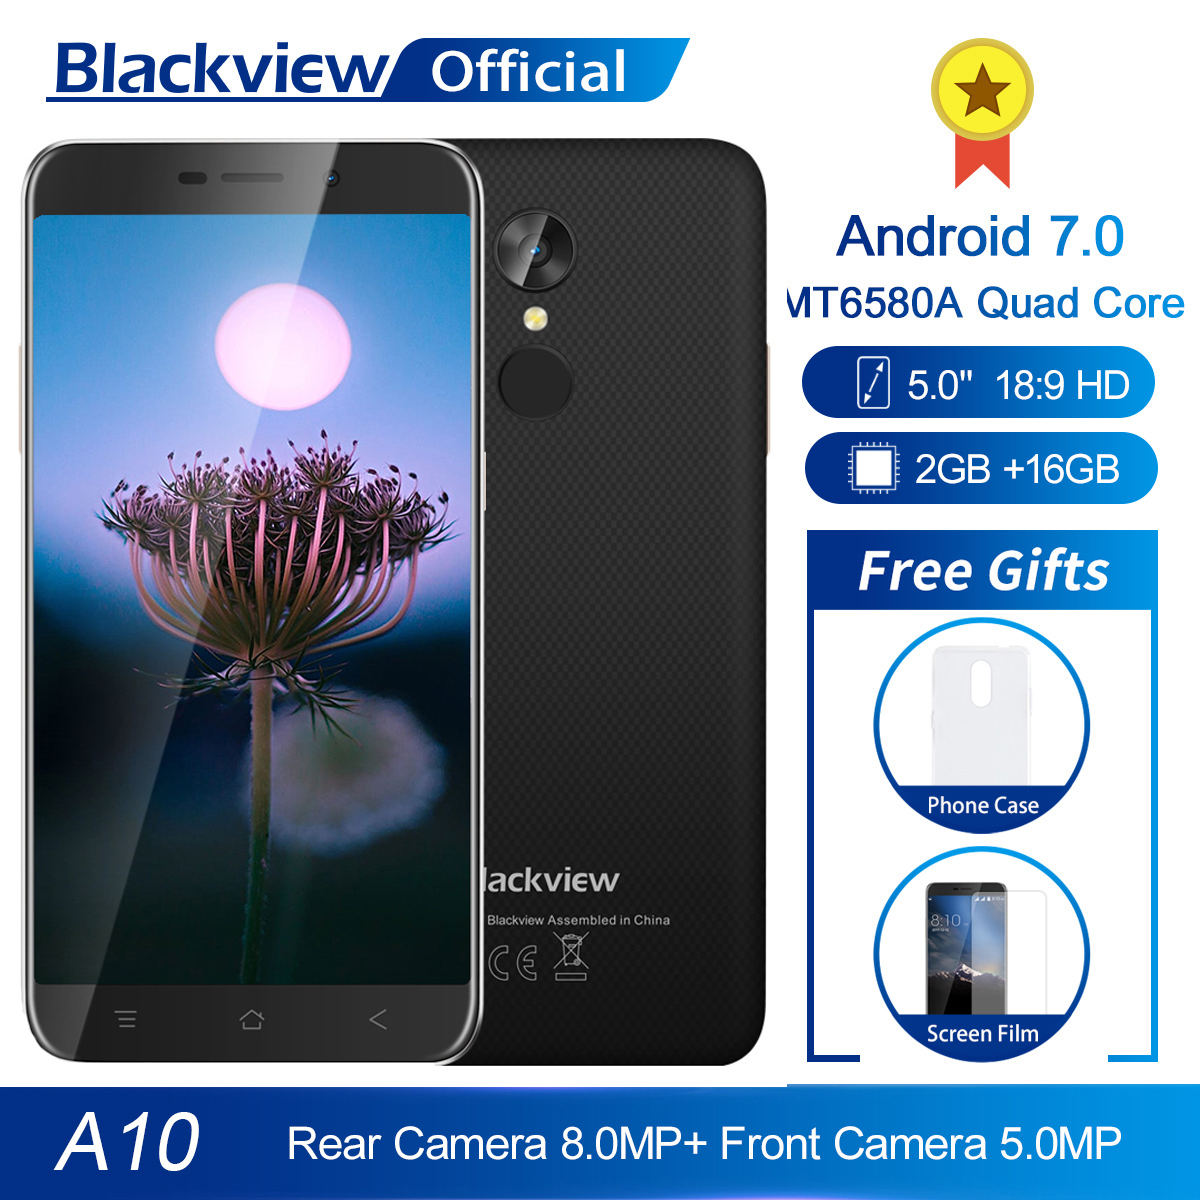 Blackview A10 MT6580A Quad Core 2GB RAM 16GB ROM 5inch HD 3G Smartphone Android 7.0 Fingerprint 8.0MP Rear Camera Mobile Phone